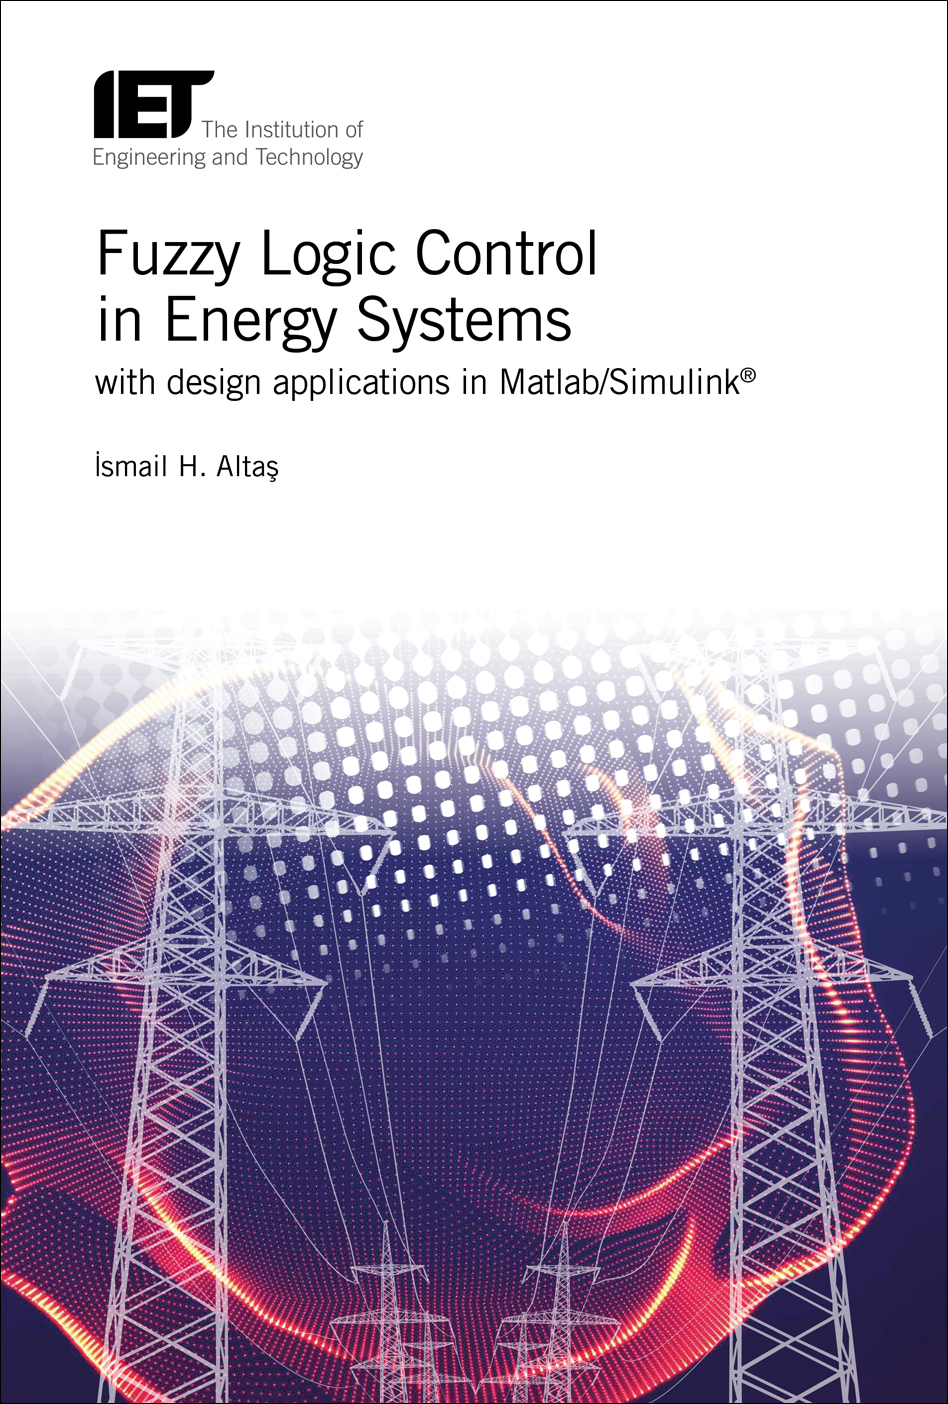 Fuzzy Logic Control in Energy Systems with design applications in MATLAB®/Simulink®